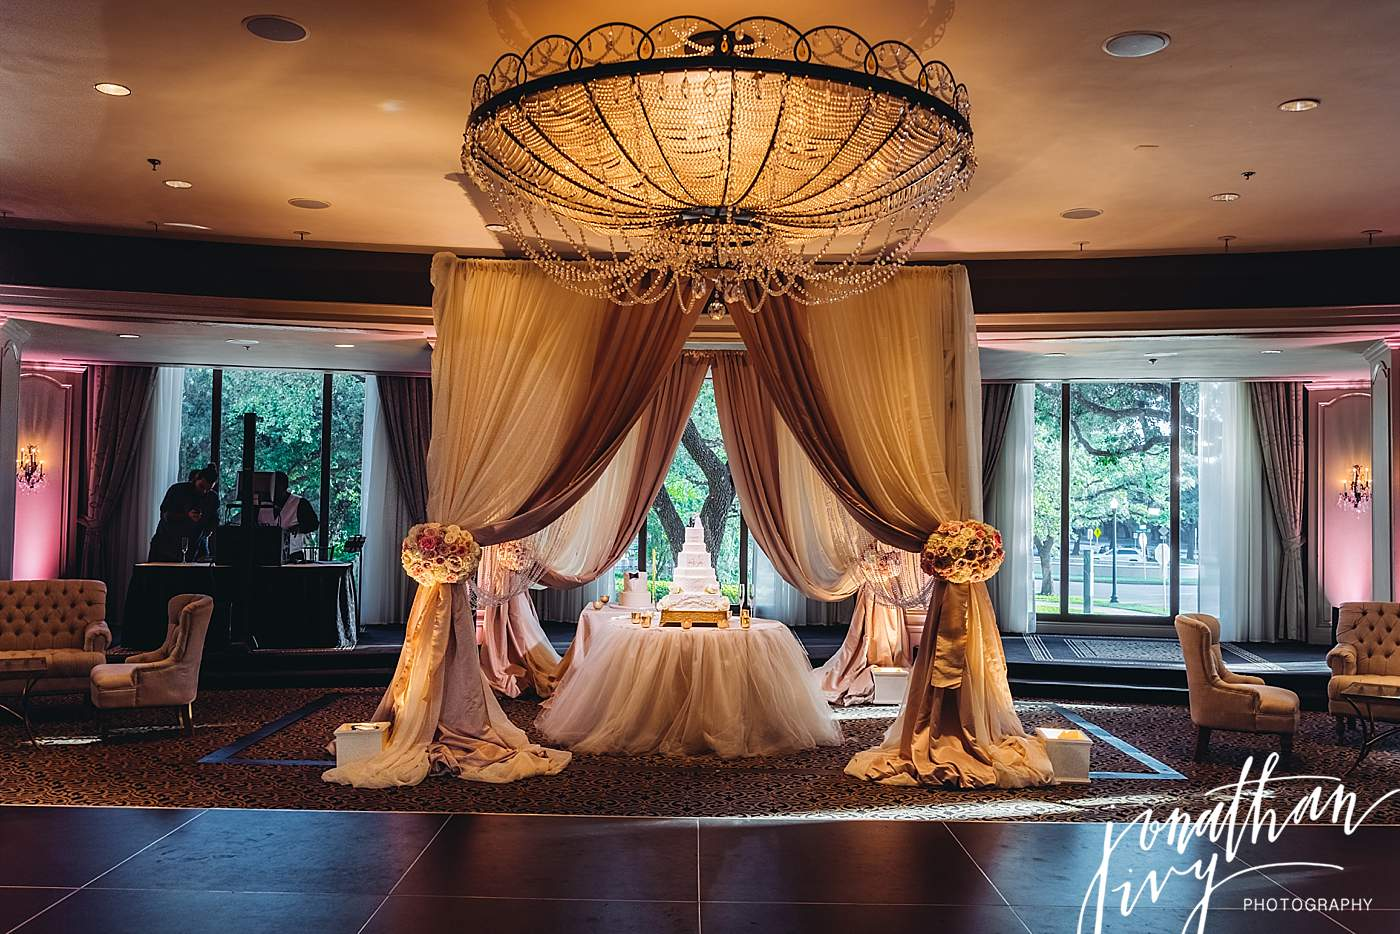 Hotel Zaza Houston Weddings,Hotel Zaza Wedding,Phantom Ballroom,Phantom Ballroom Reception,Wedding at Hotel Zaza,